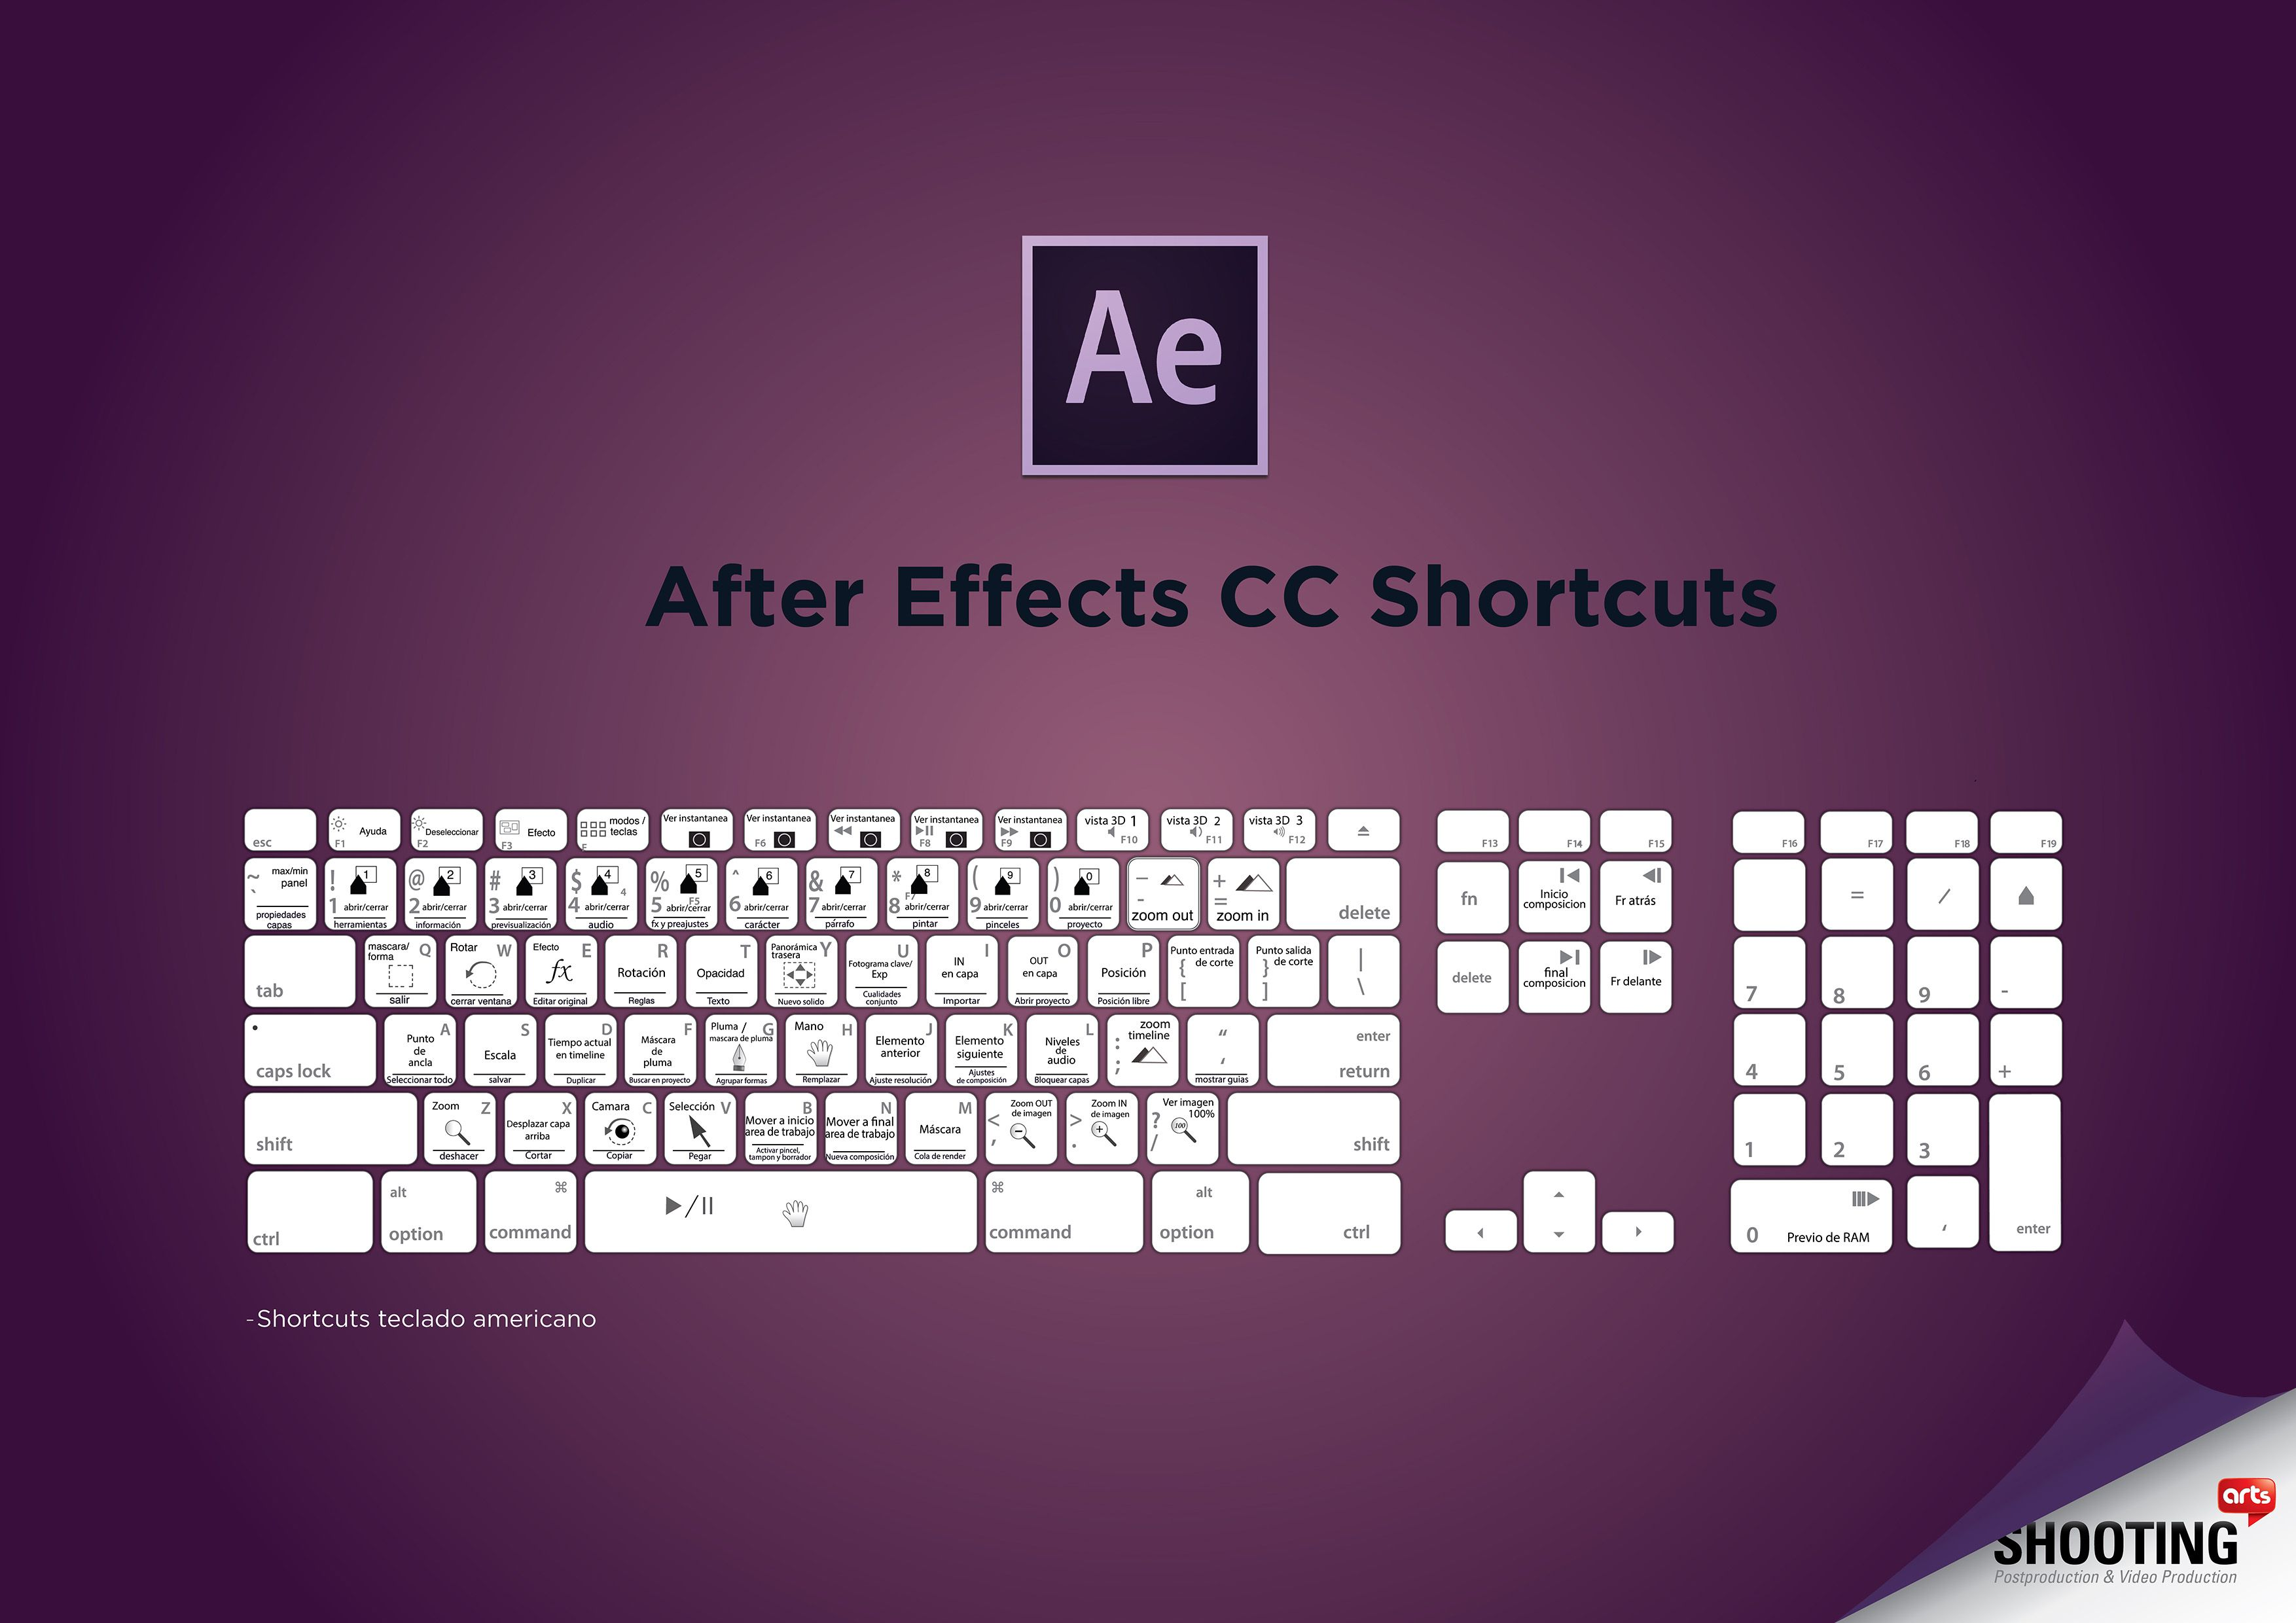 after effects cc keyboard shortcuts - Google 검색 | After Effects